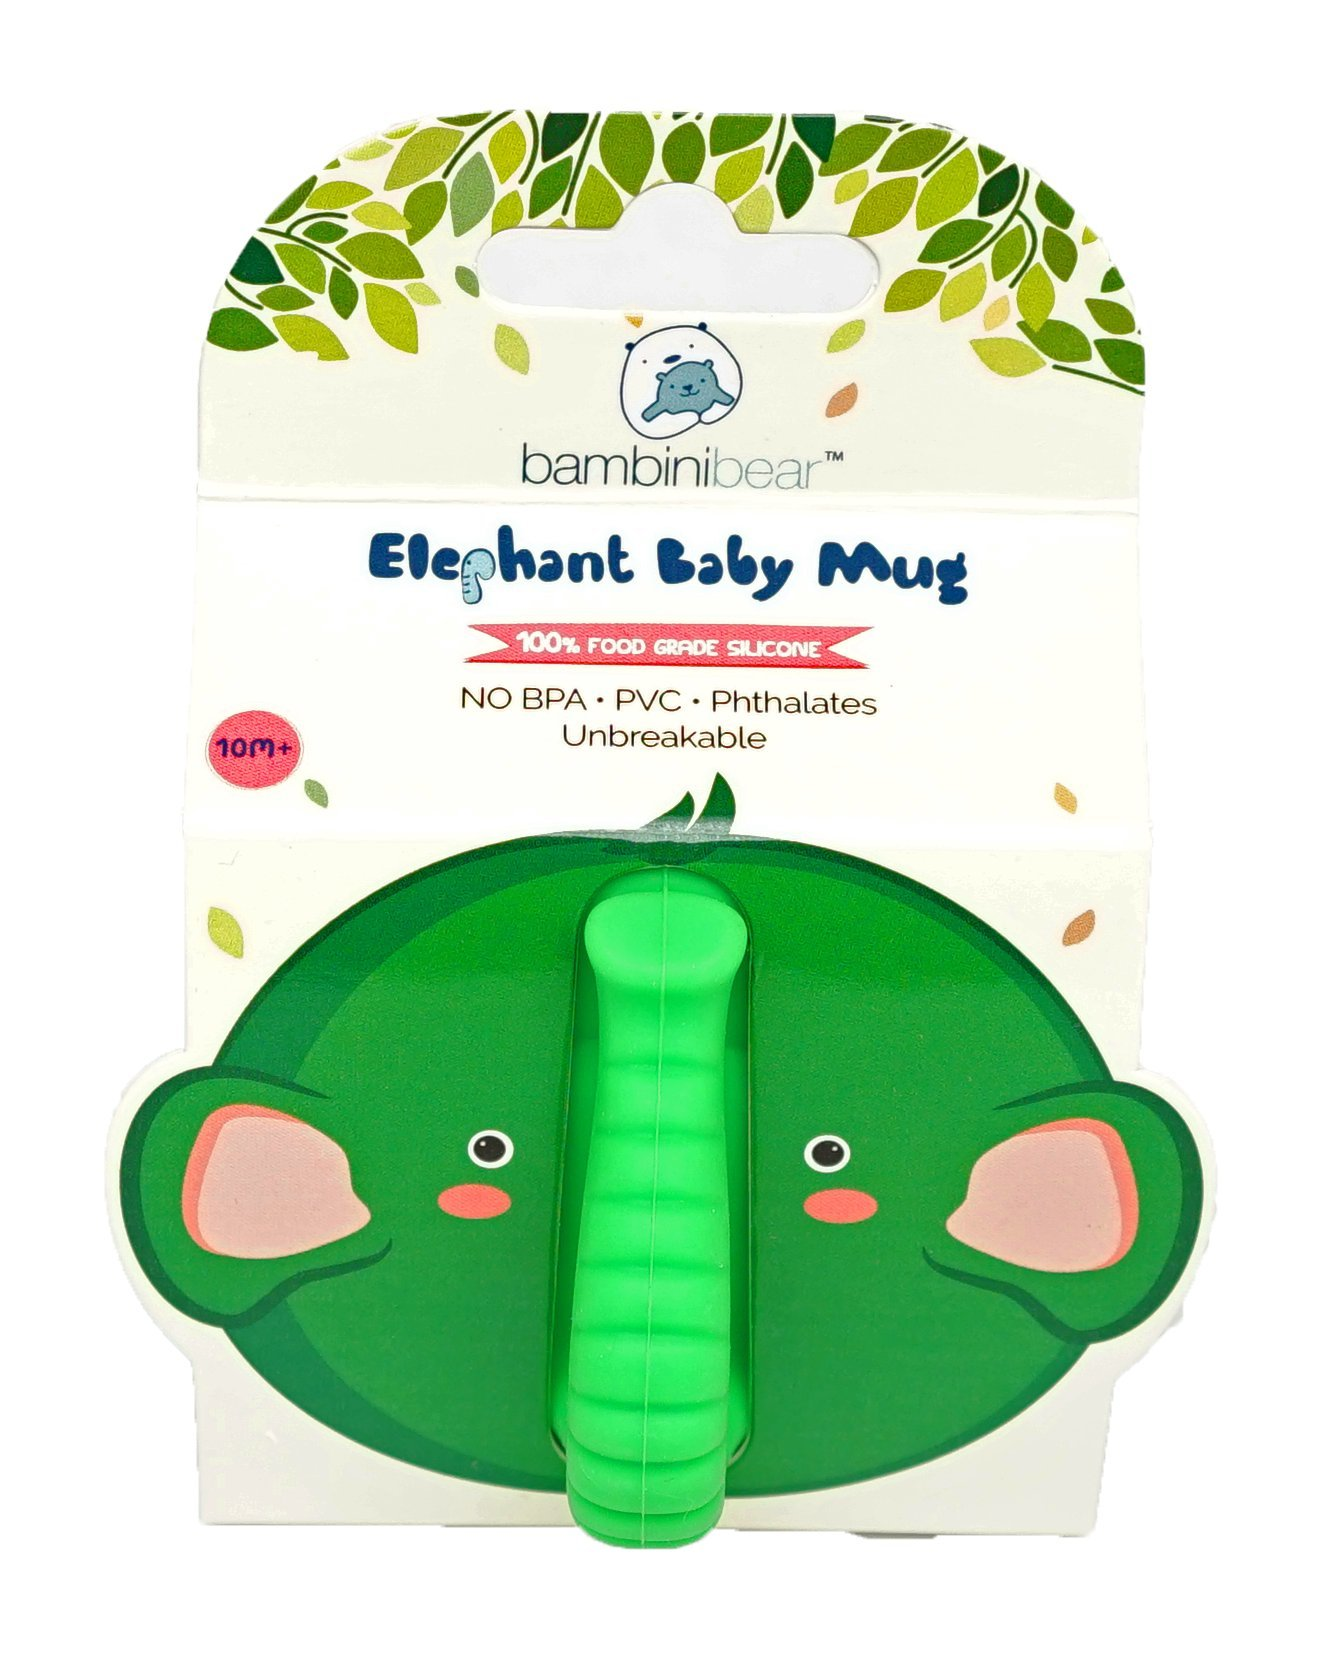 Baby Kid Sippy Cup Mug For Toddlers Learning Cup Elephant Design Great For Baby's Interaction Dexterity Food Grade Silicone BPA FREE Bambini Bear - Lime Green by Bambini Bear (Image #4)